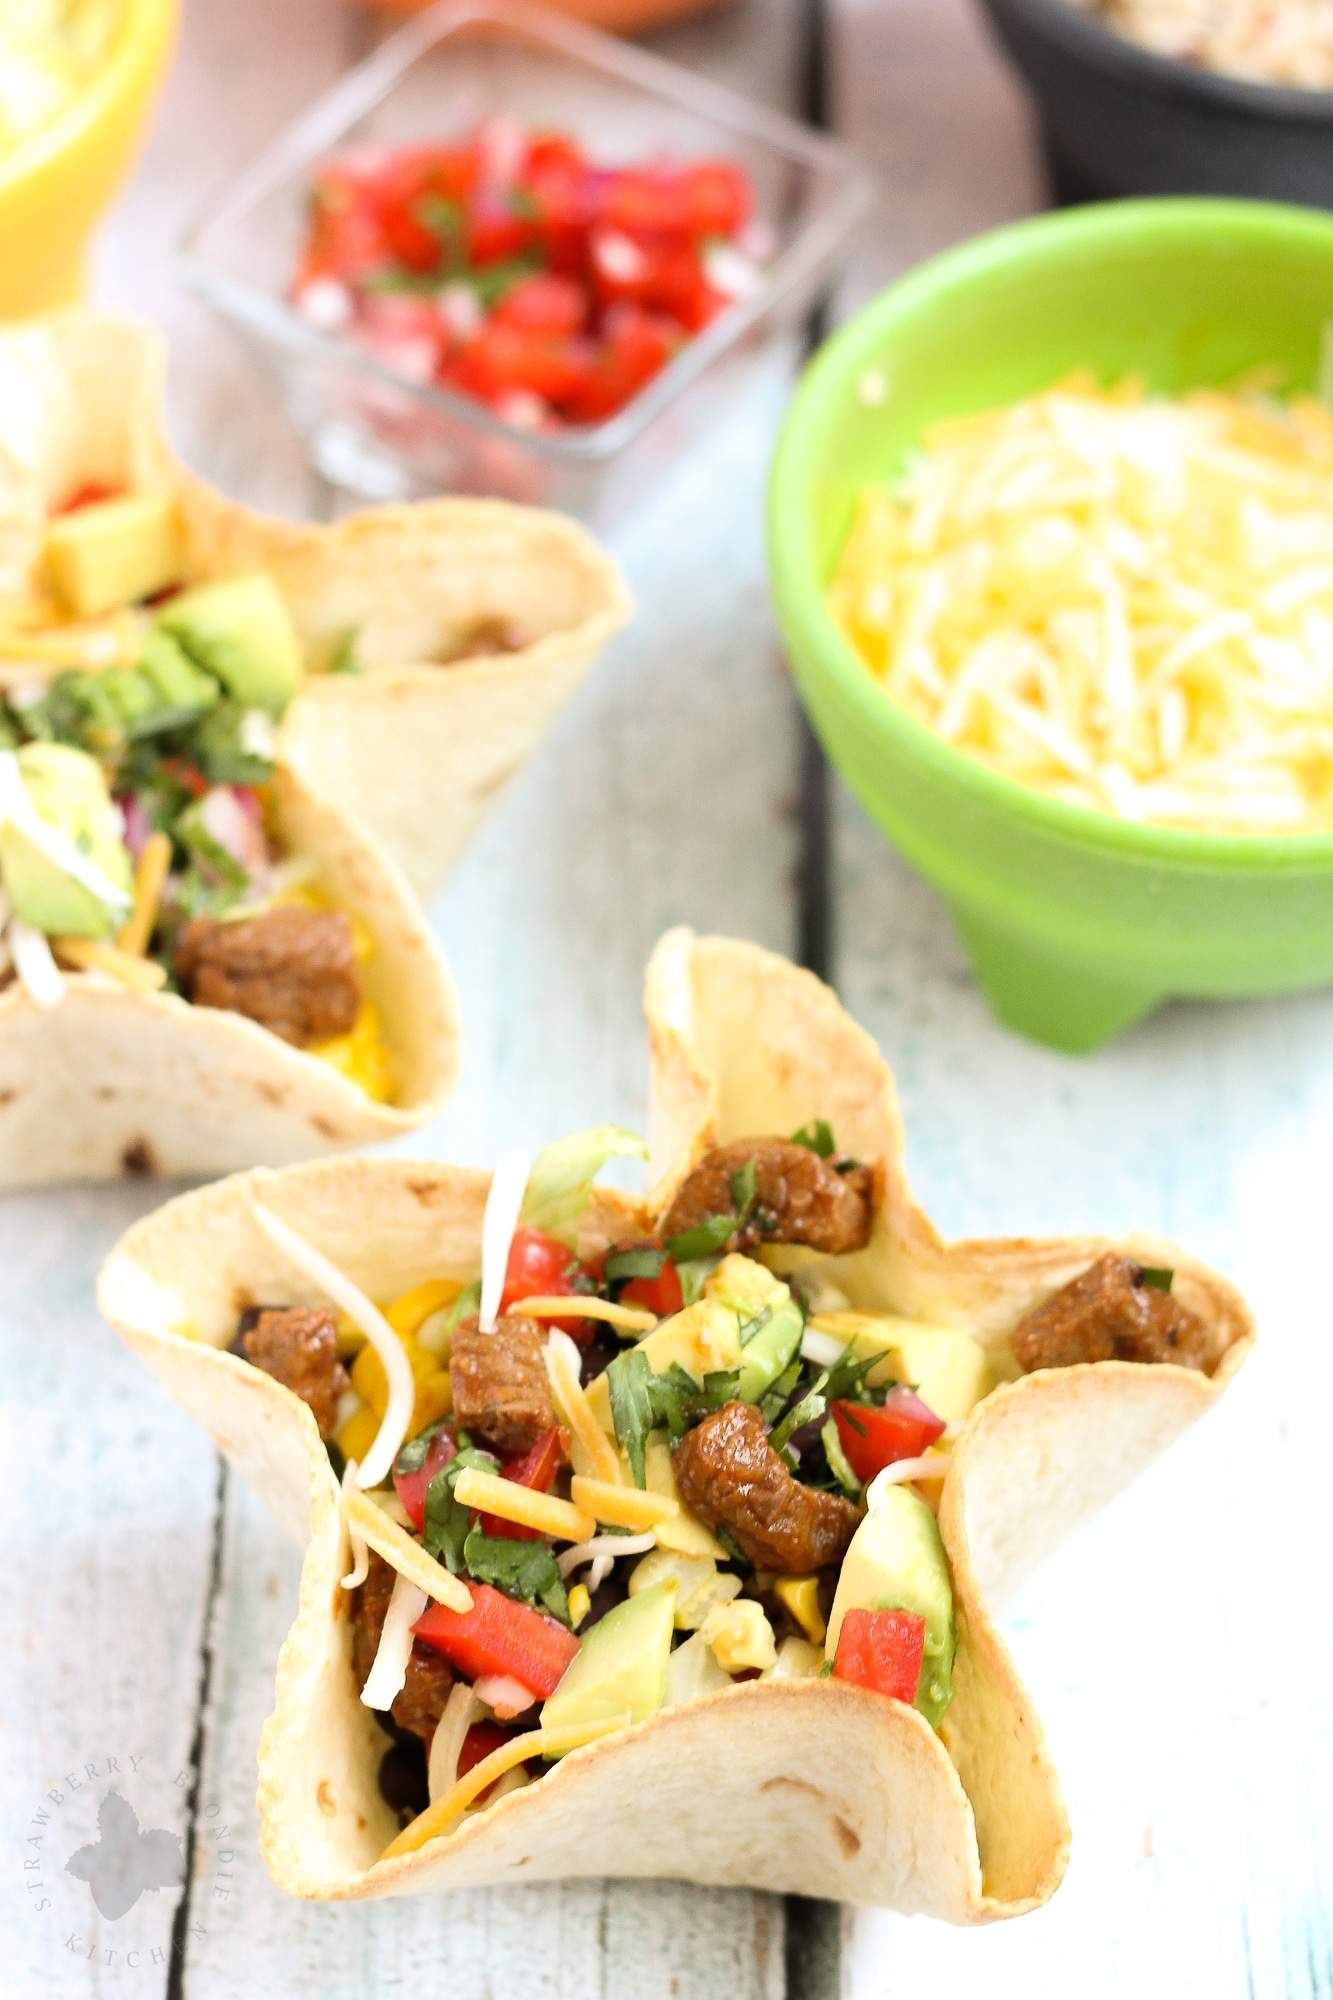 BBQ Steak Taco Salads with Homemade Tortilla Bowls | Strawberry ...